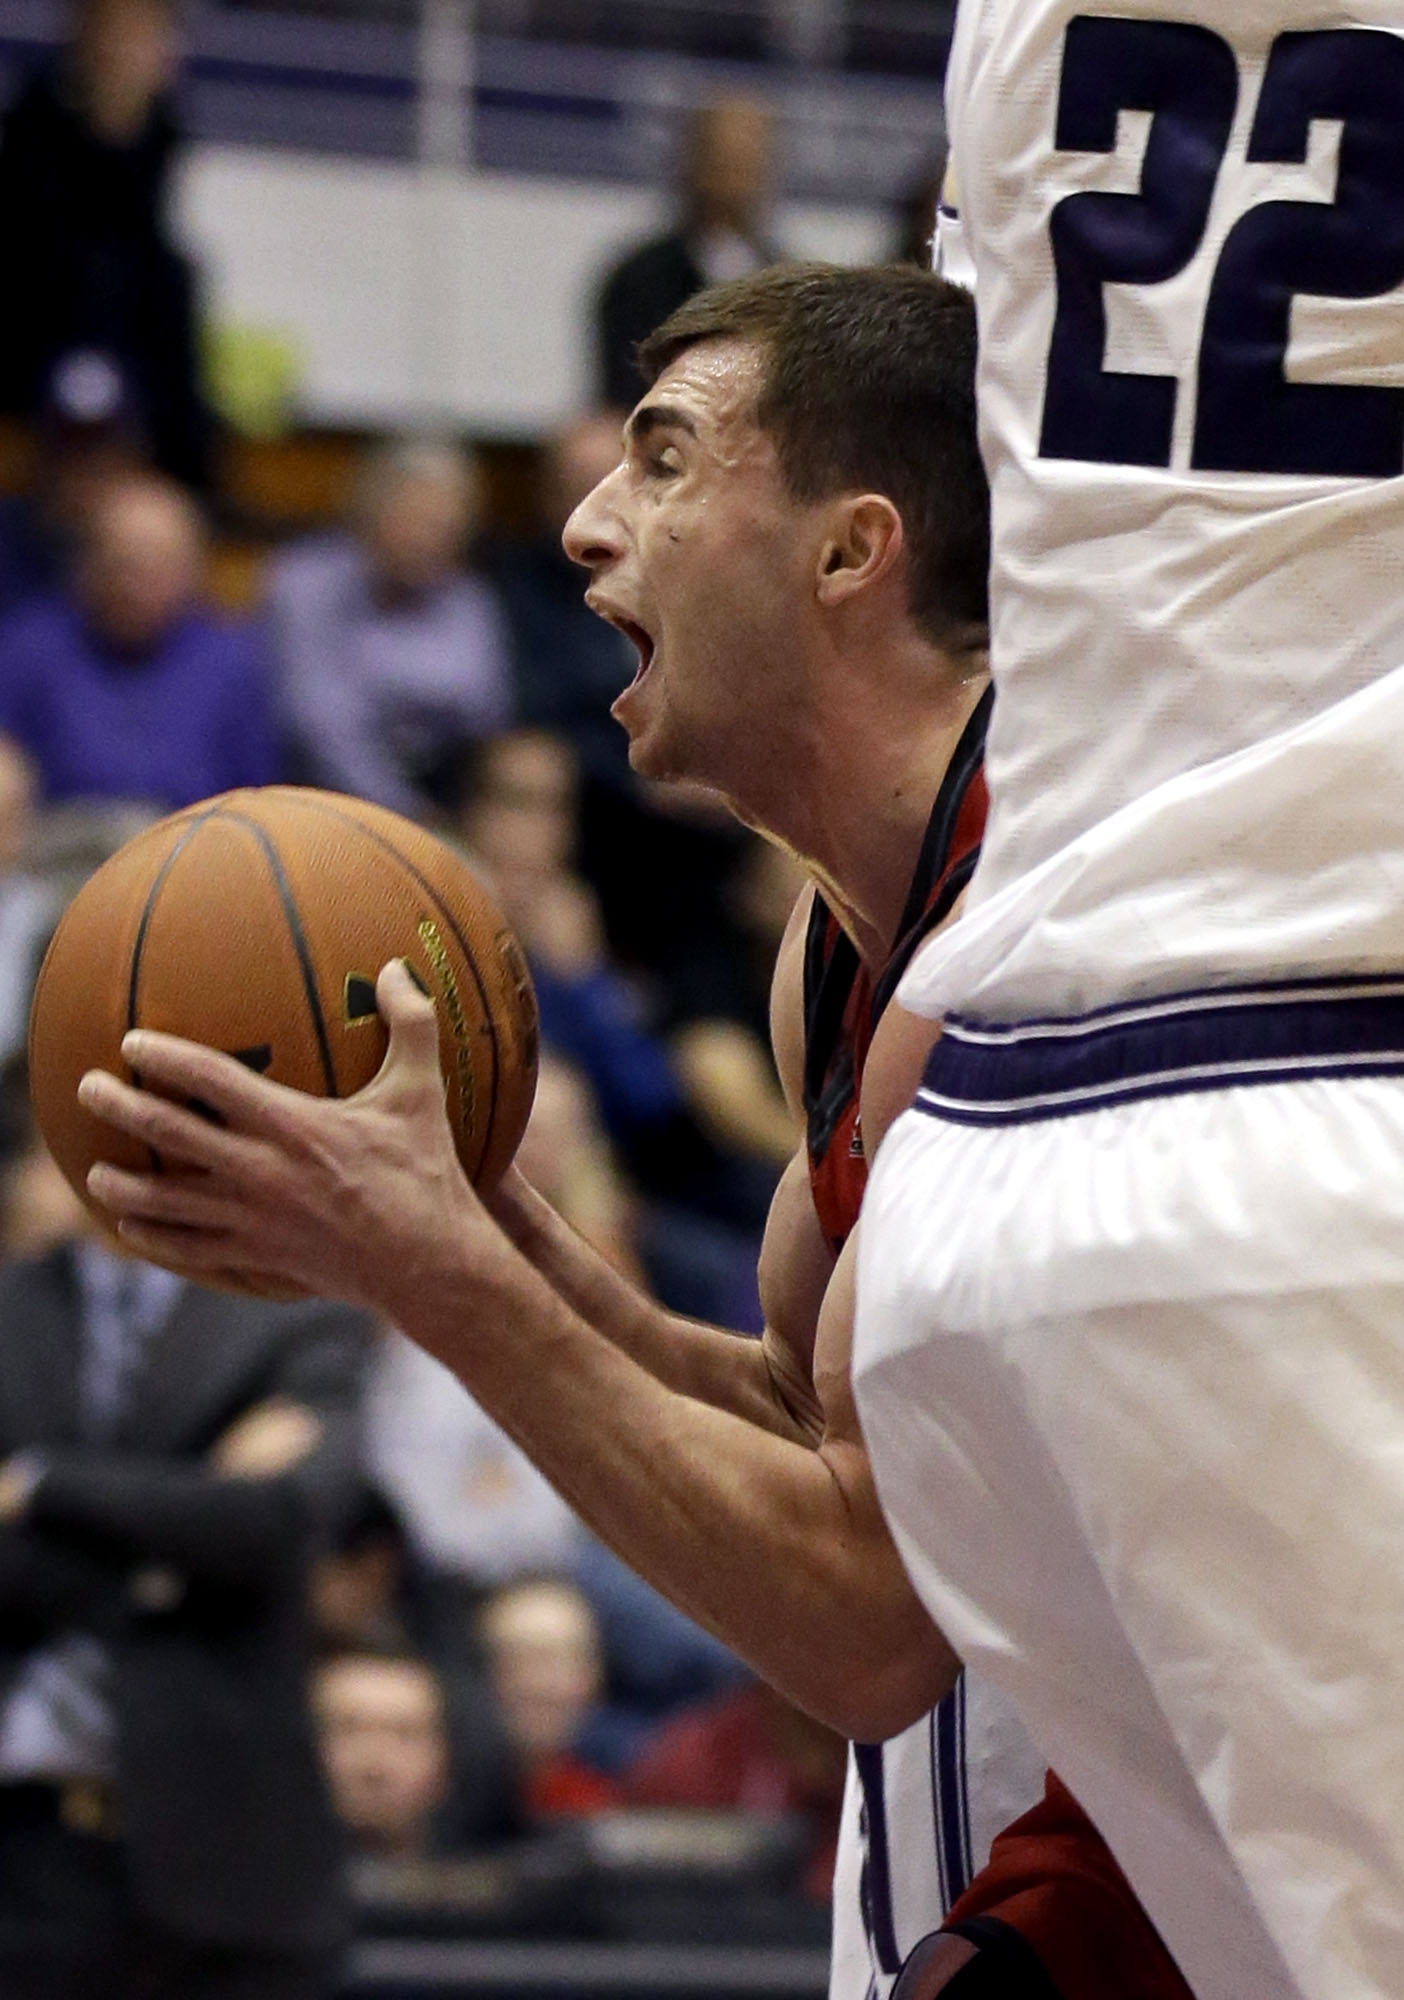 SIU - Edwardsville guard Burak Eslik, left, drives to the basket between Northwestern center Alex Olah and forward Nathan Taphorn during the first half of an NCAA college basketball game on Saturday, Dec. 5, 2015, in Evanston, Ill. (AP Photo/Nam Y. Huh)